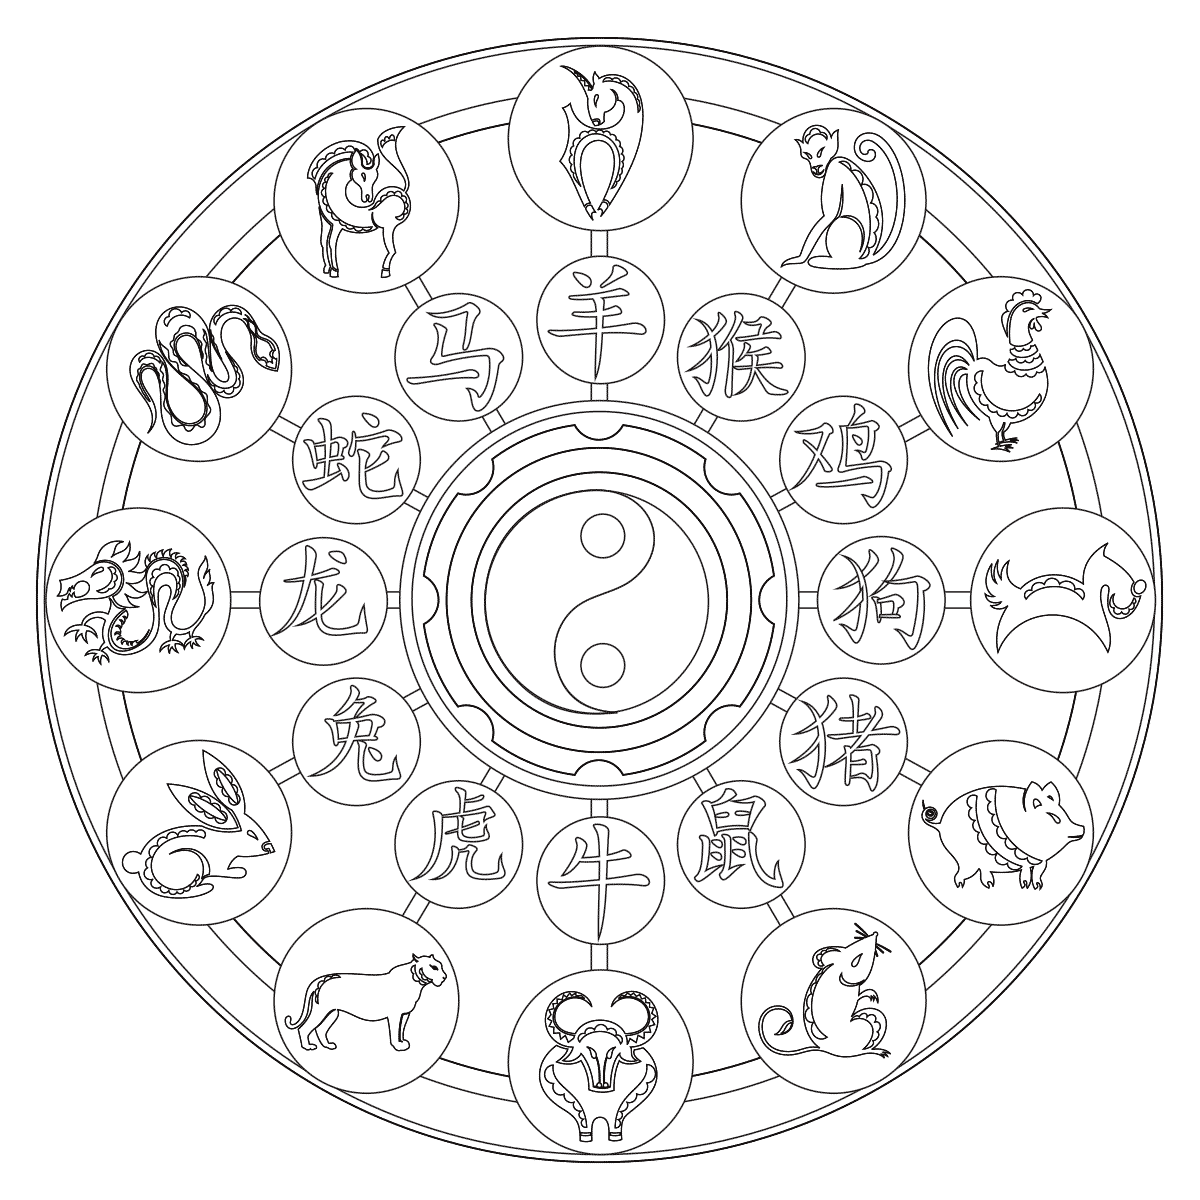 Chinese Zodiac Coloring Pages At Getcolorings